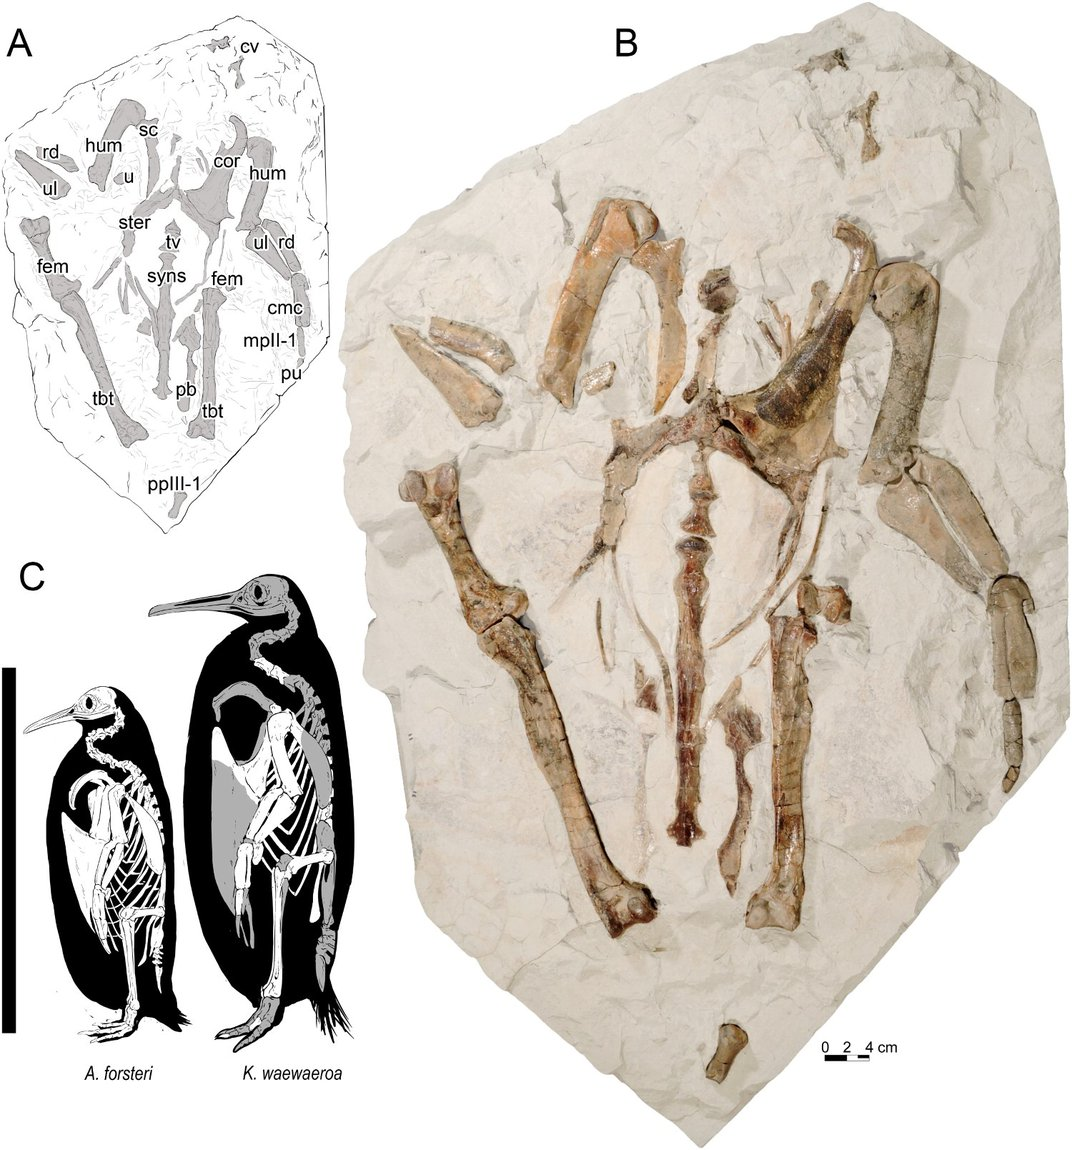 New Zealand Kids Discovered This Fossil of New Giant Penguin Species on a Field Trip